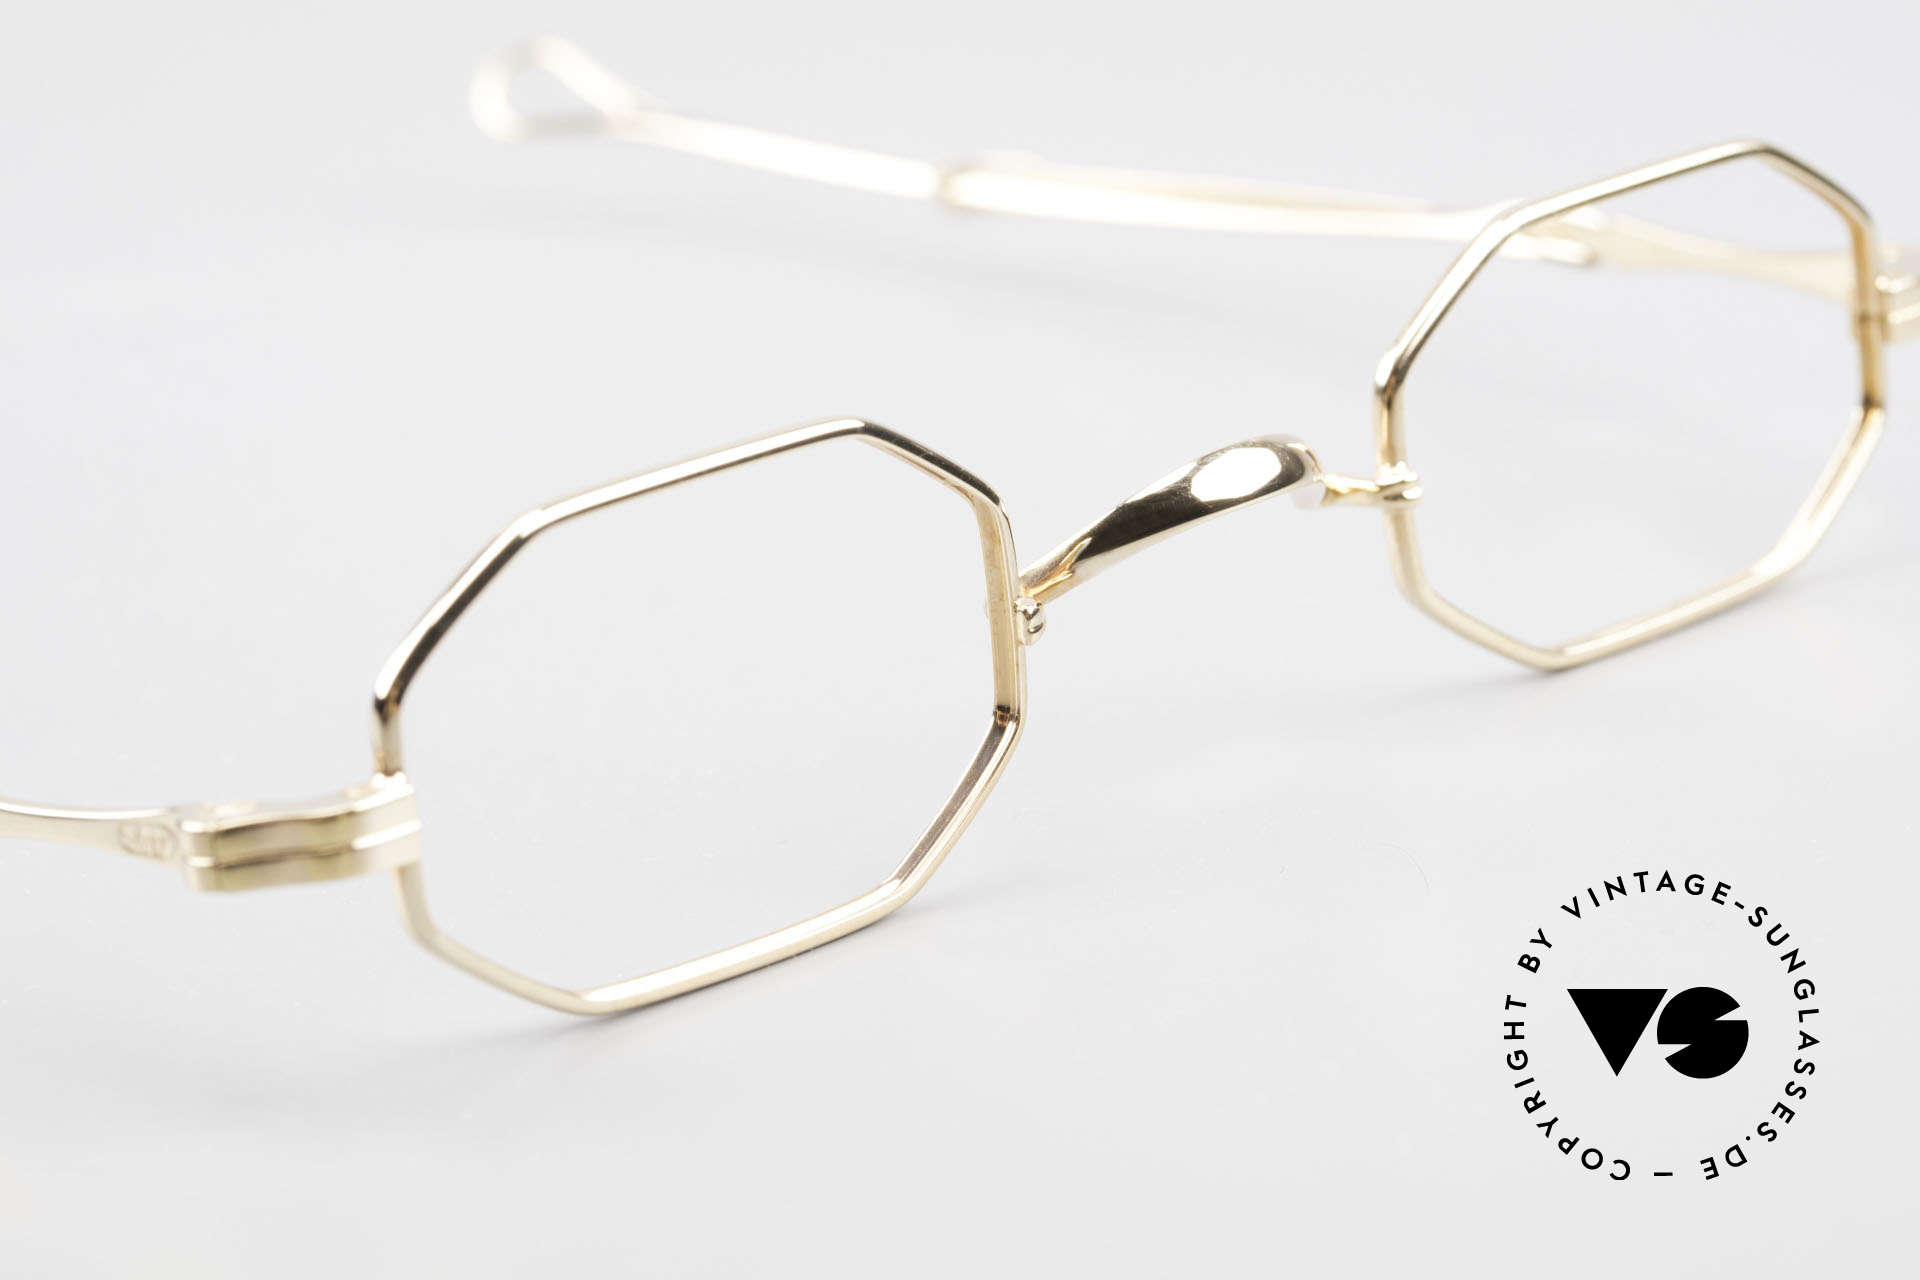 Lunor I 01 Telescopic Octagonal Frame Gold Plated, unworn RARITY (for all lovers of quality) from app. 1996, Made for Men and Women